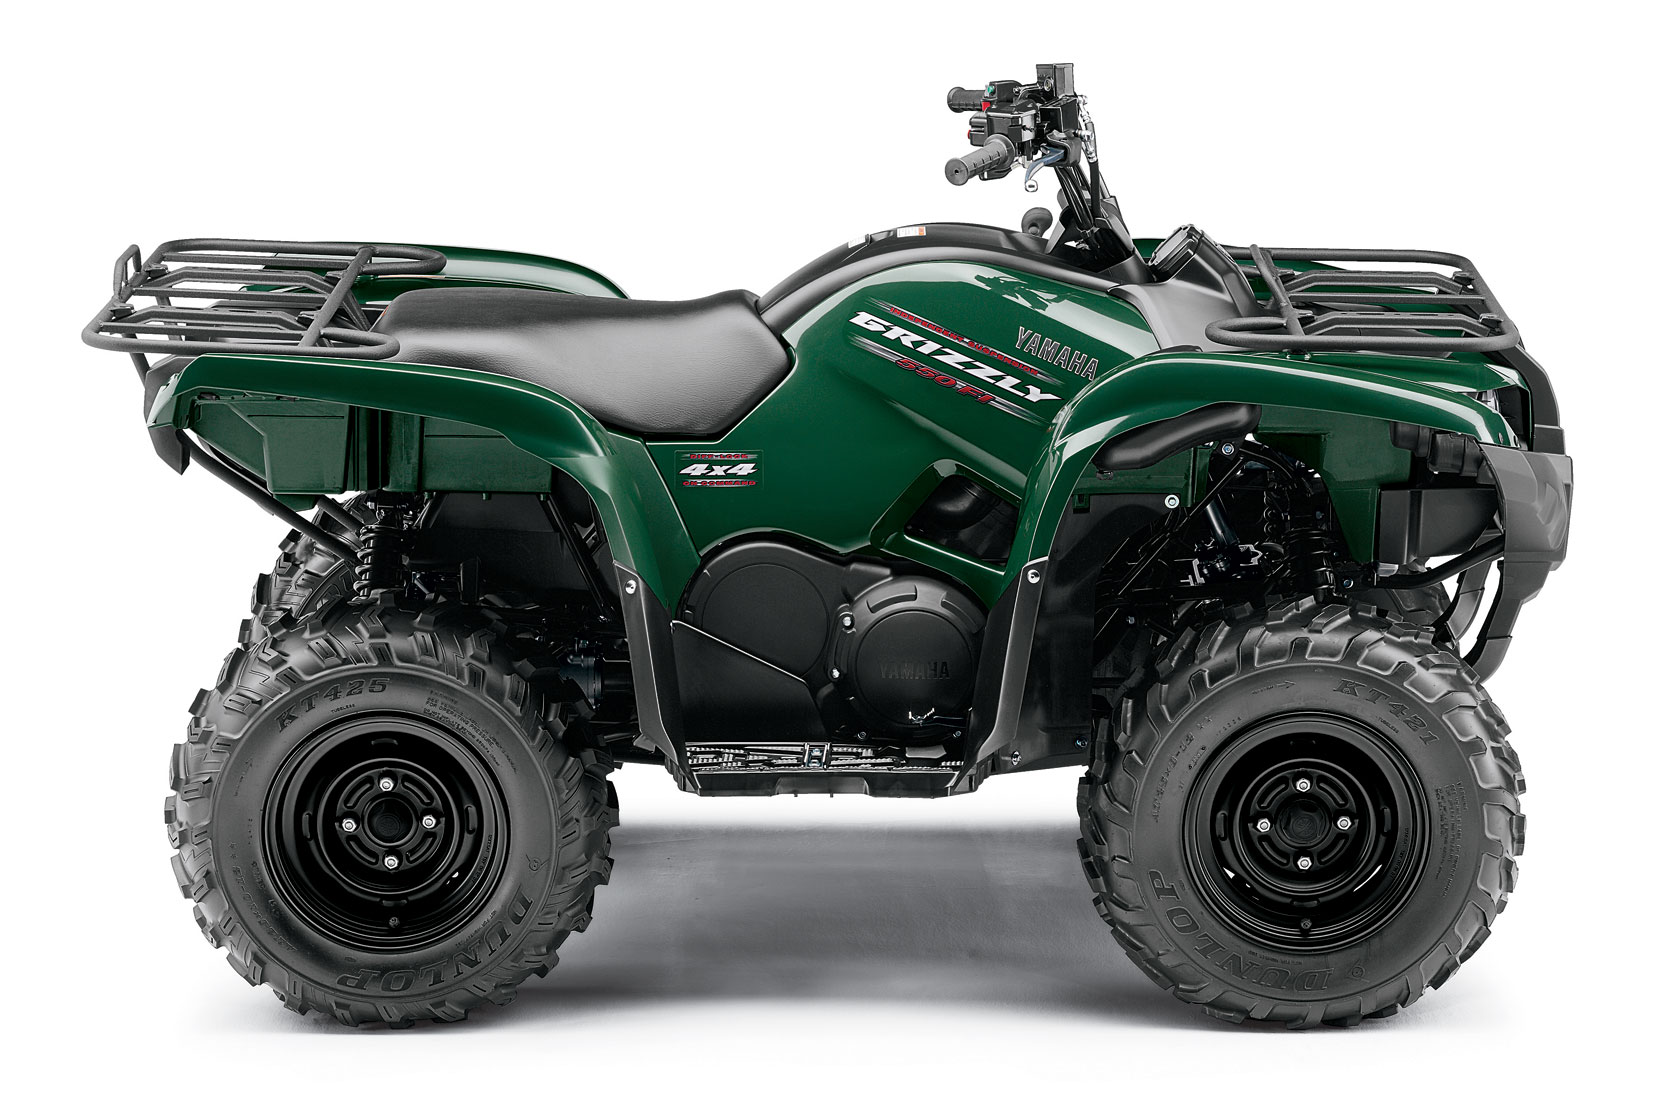 Yamaha grizzly 550 fi specs 2009 2010 autoevolution for Yamaha clp 550 specifications